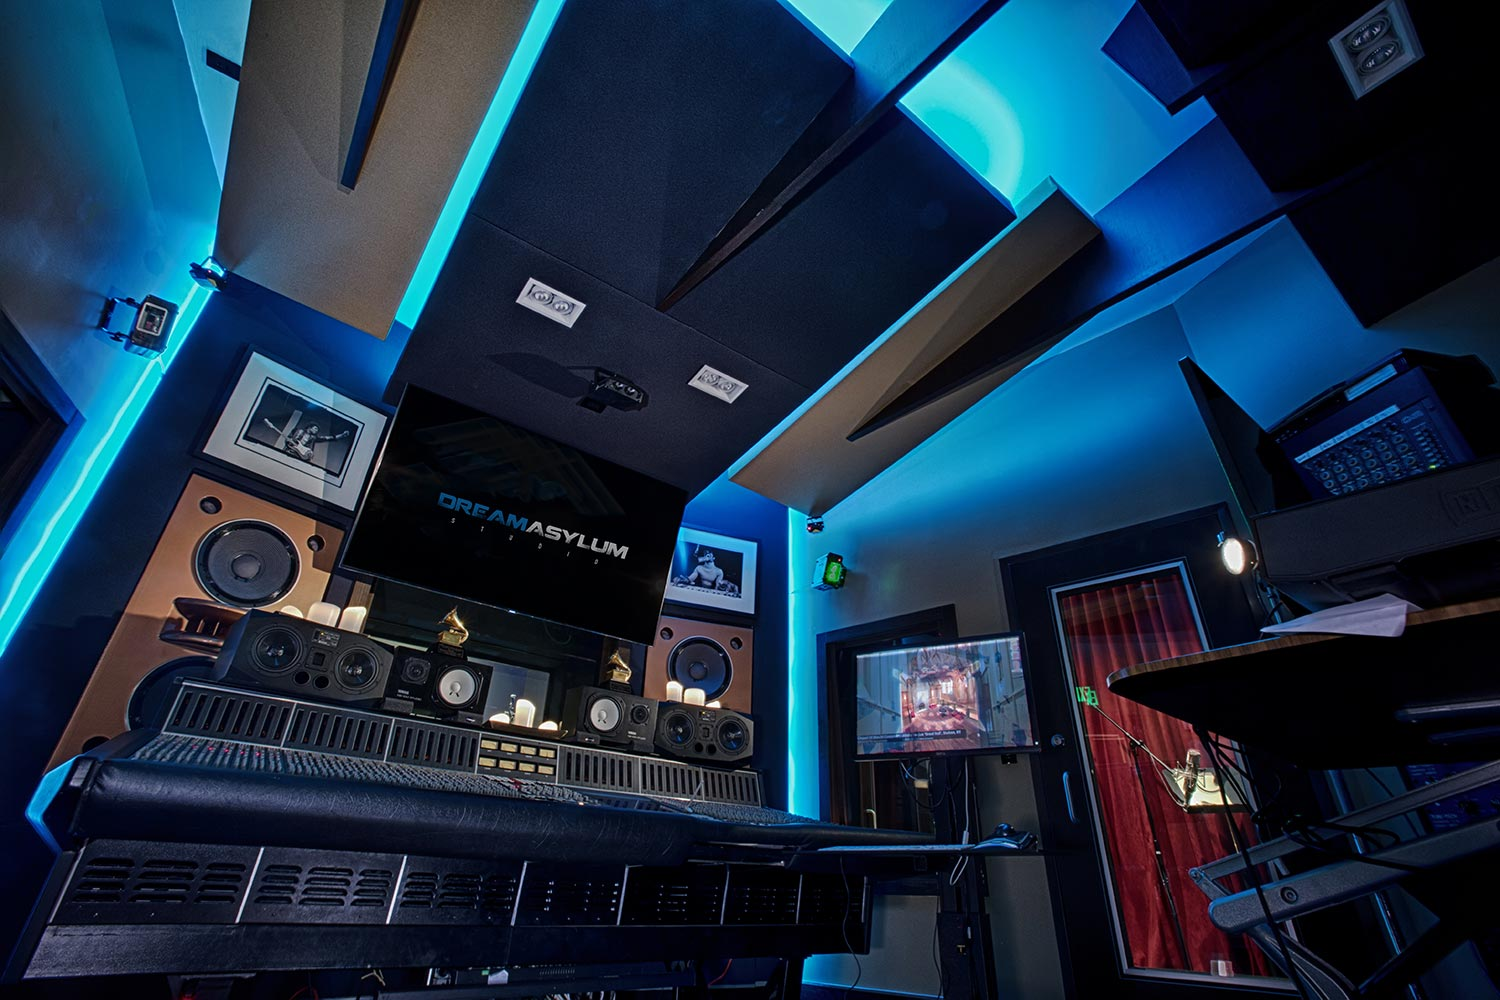 Two of the contemporary music scene's most prolific hit producers and mixing engineer, Nate 'Danja' Hills and Marcella Araica have added a cutting edge, WSDG recording studio to their N.A.R.S. (New Age Rock Stars) label. Studio X, Danja Studio in Blue.